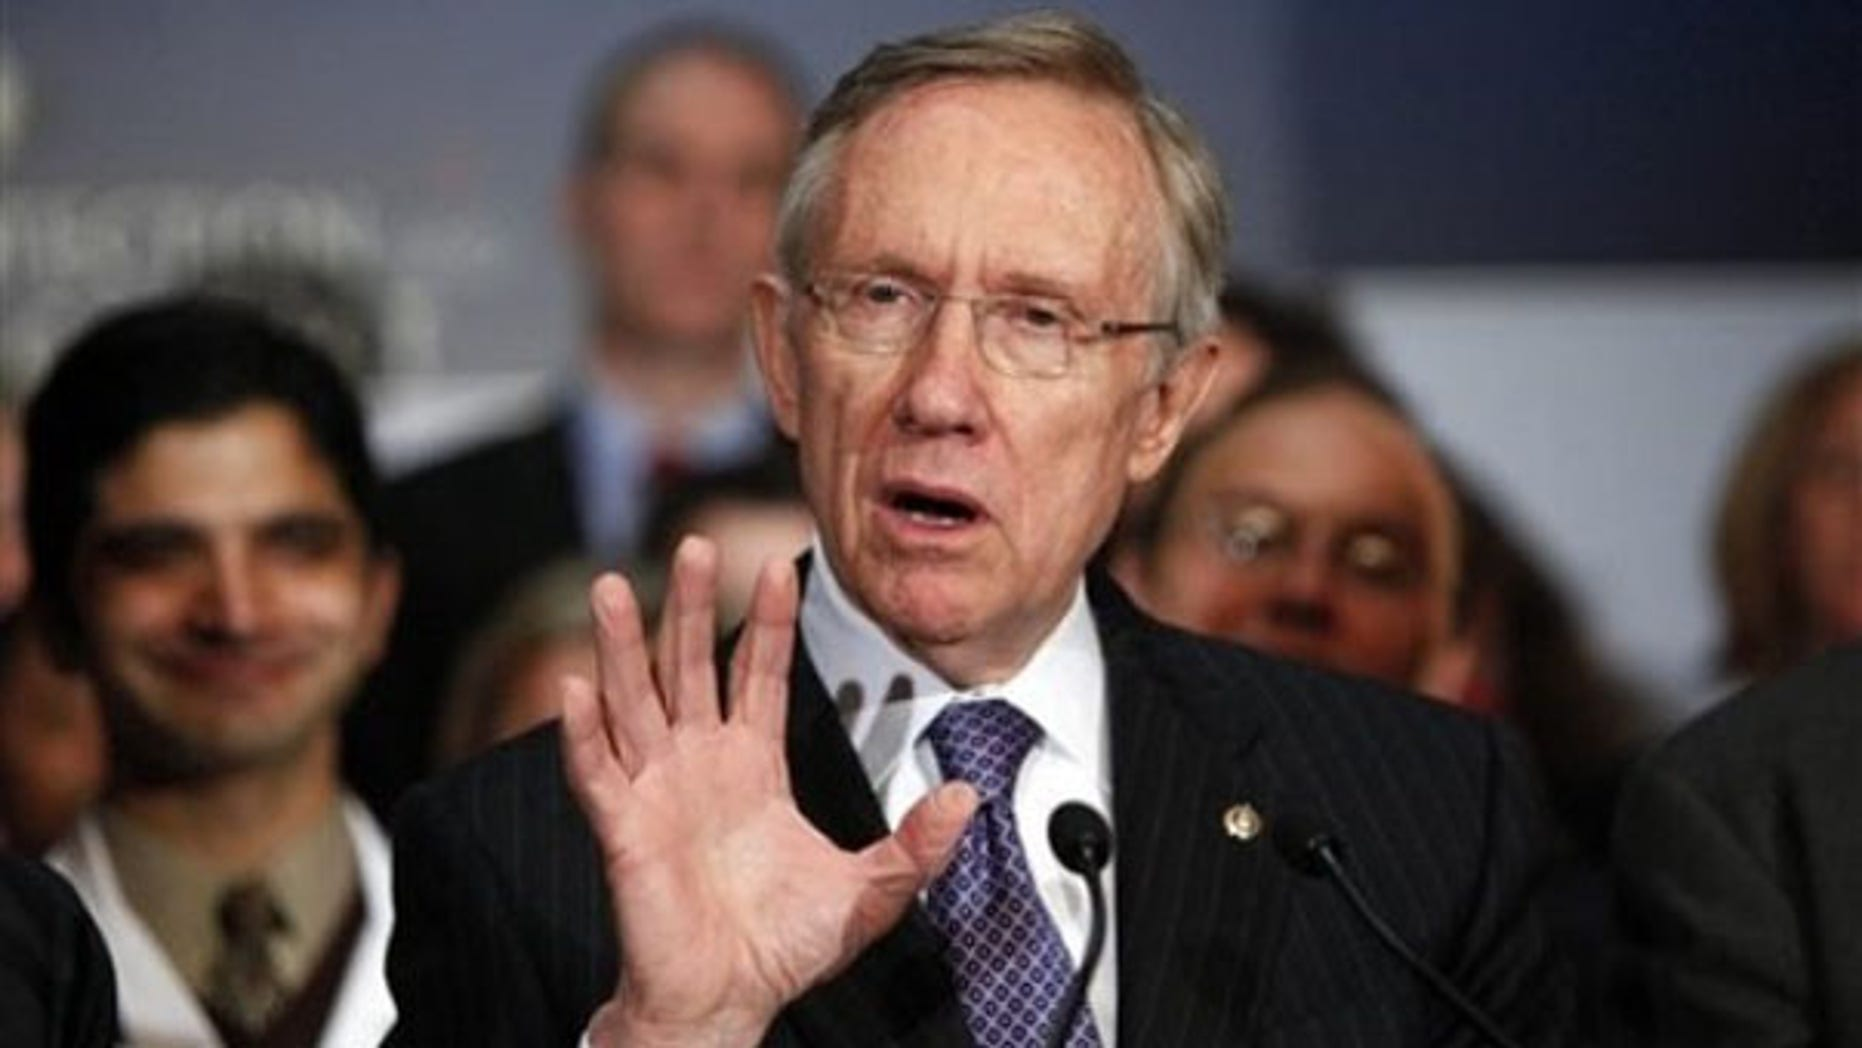 Senate Majority Leader Harry Reid speaks at a news conference on Capitol Hill Dec. 22. (AP Photo)